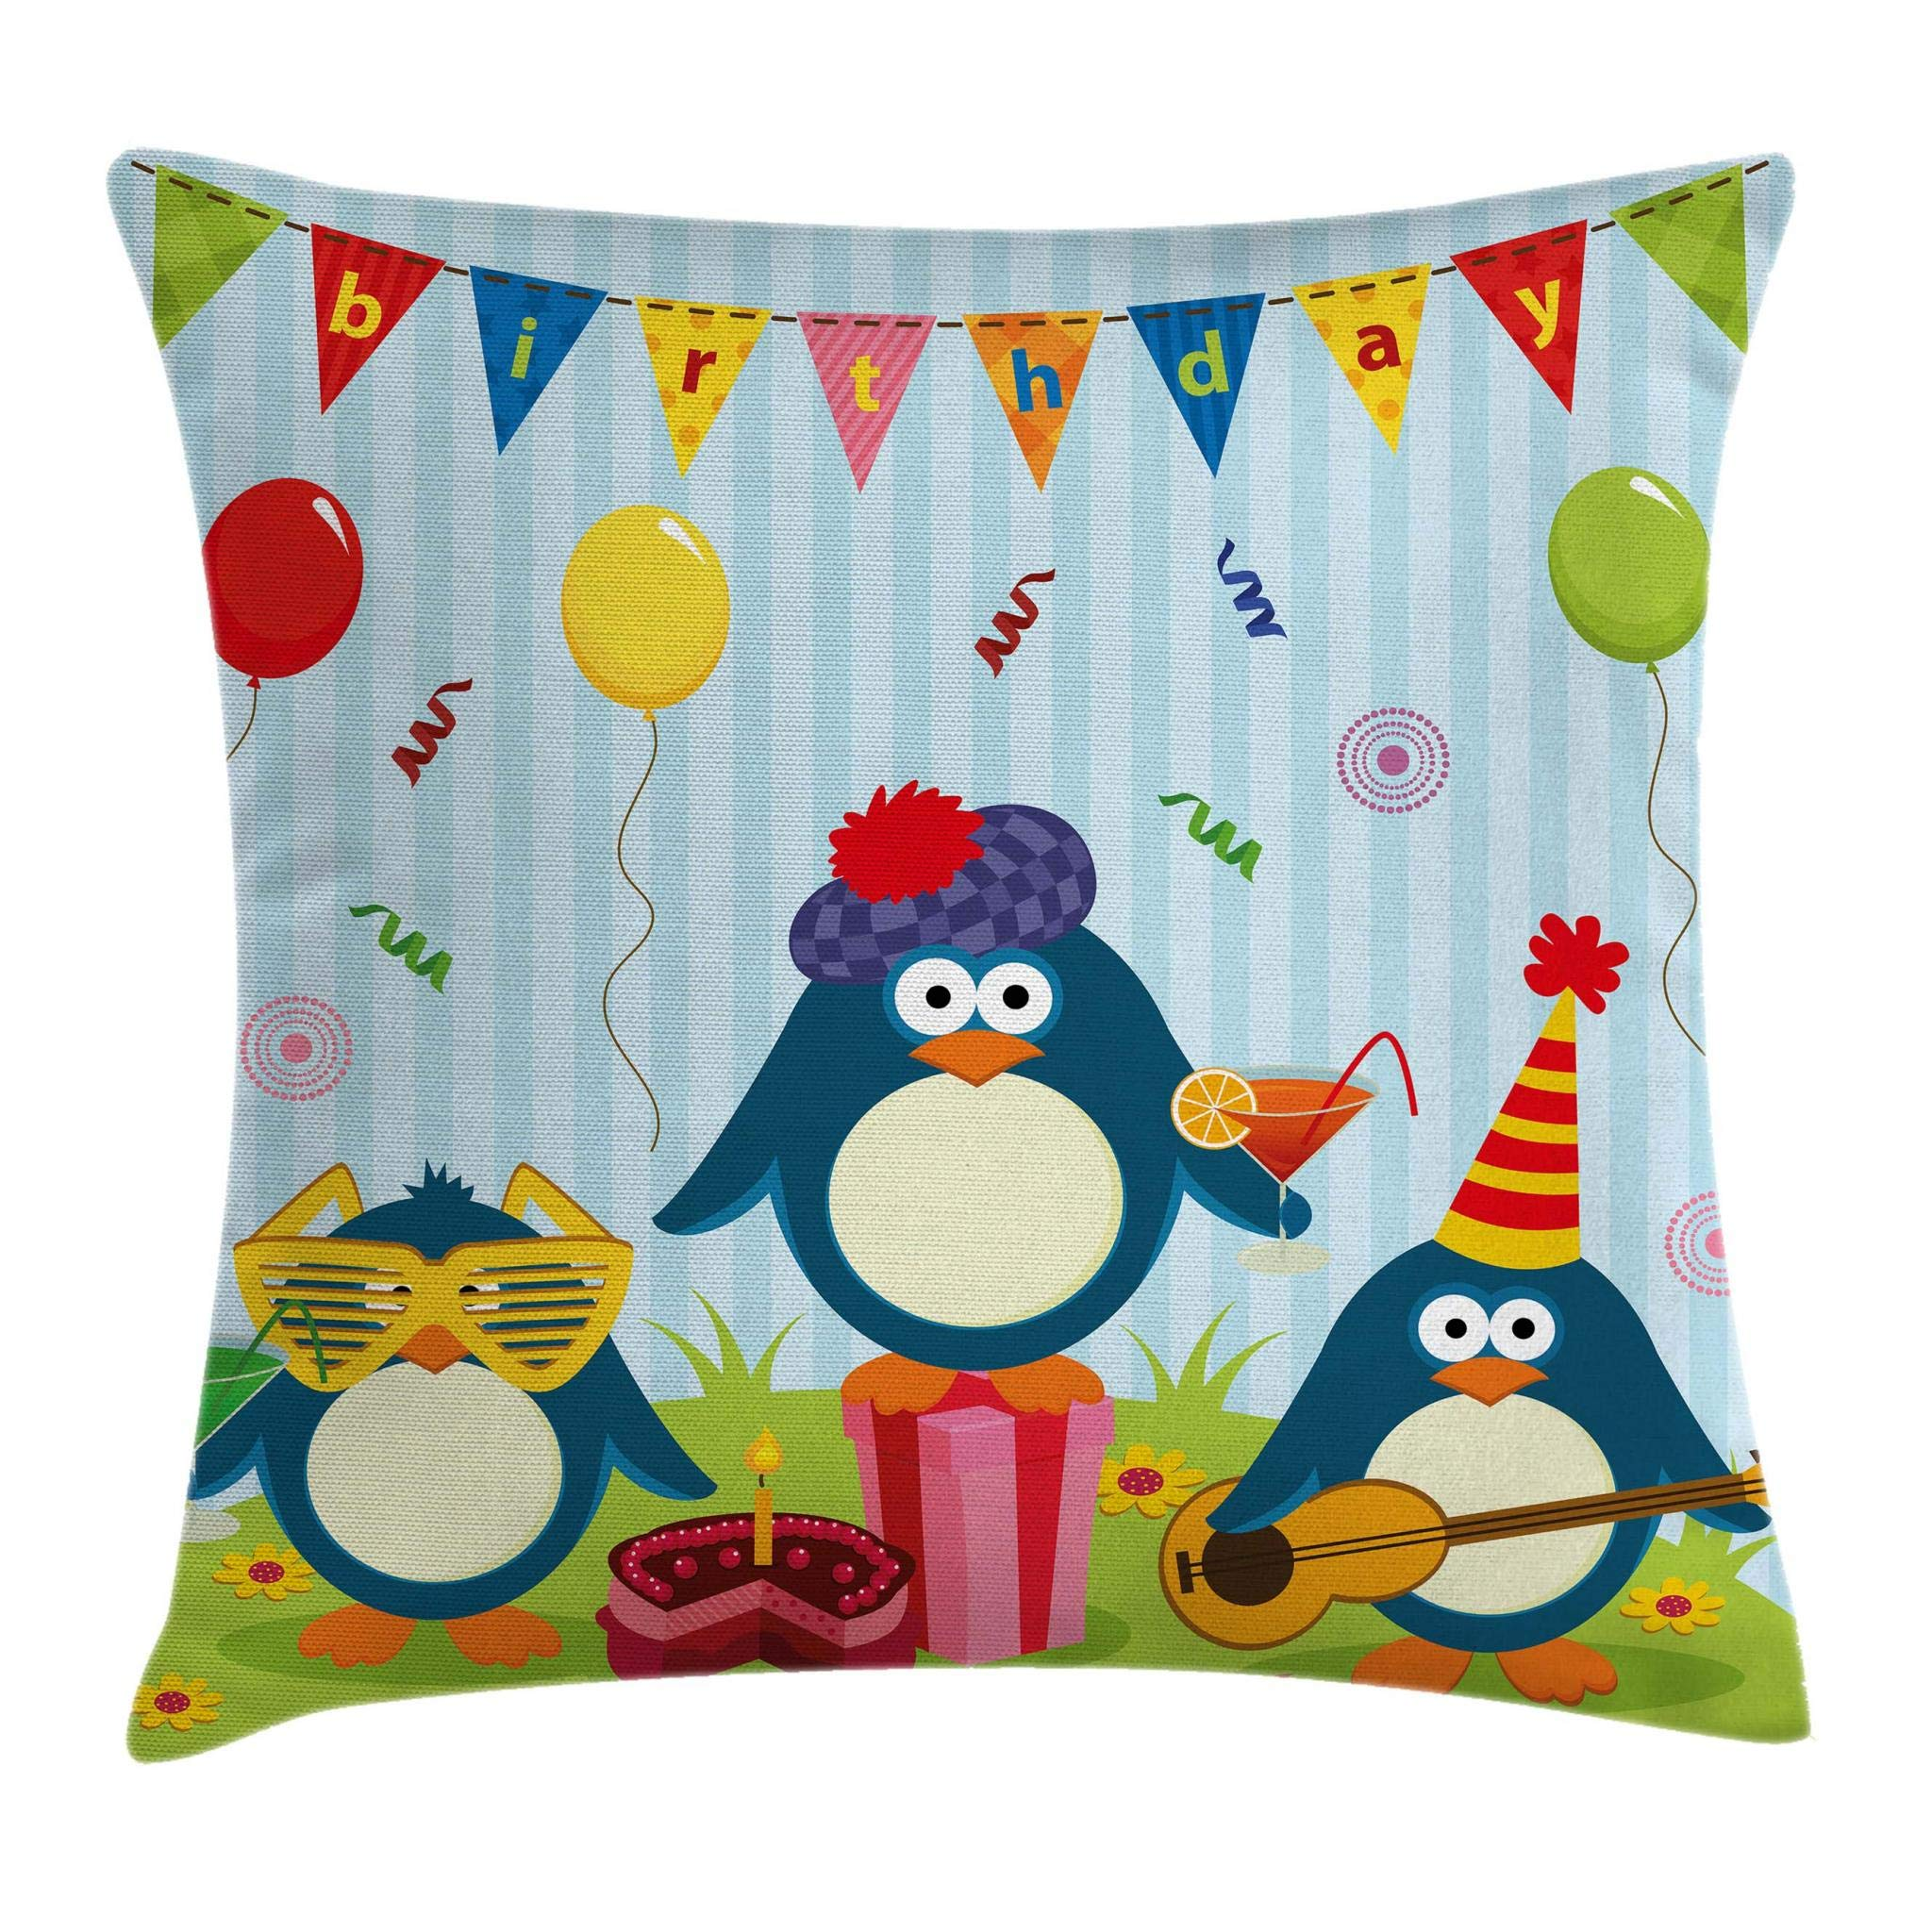 Ambesonne Birthday Decorations for Kids Throw Pillow Cushion Cover, Cartoon Penguin Party with Flags Cakes and Box, Decorative Square Accent Pillow Case, 18 X 18 Inches, Light Blue and Fern Green